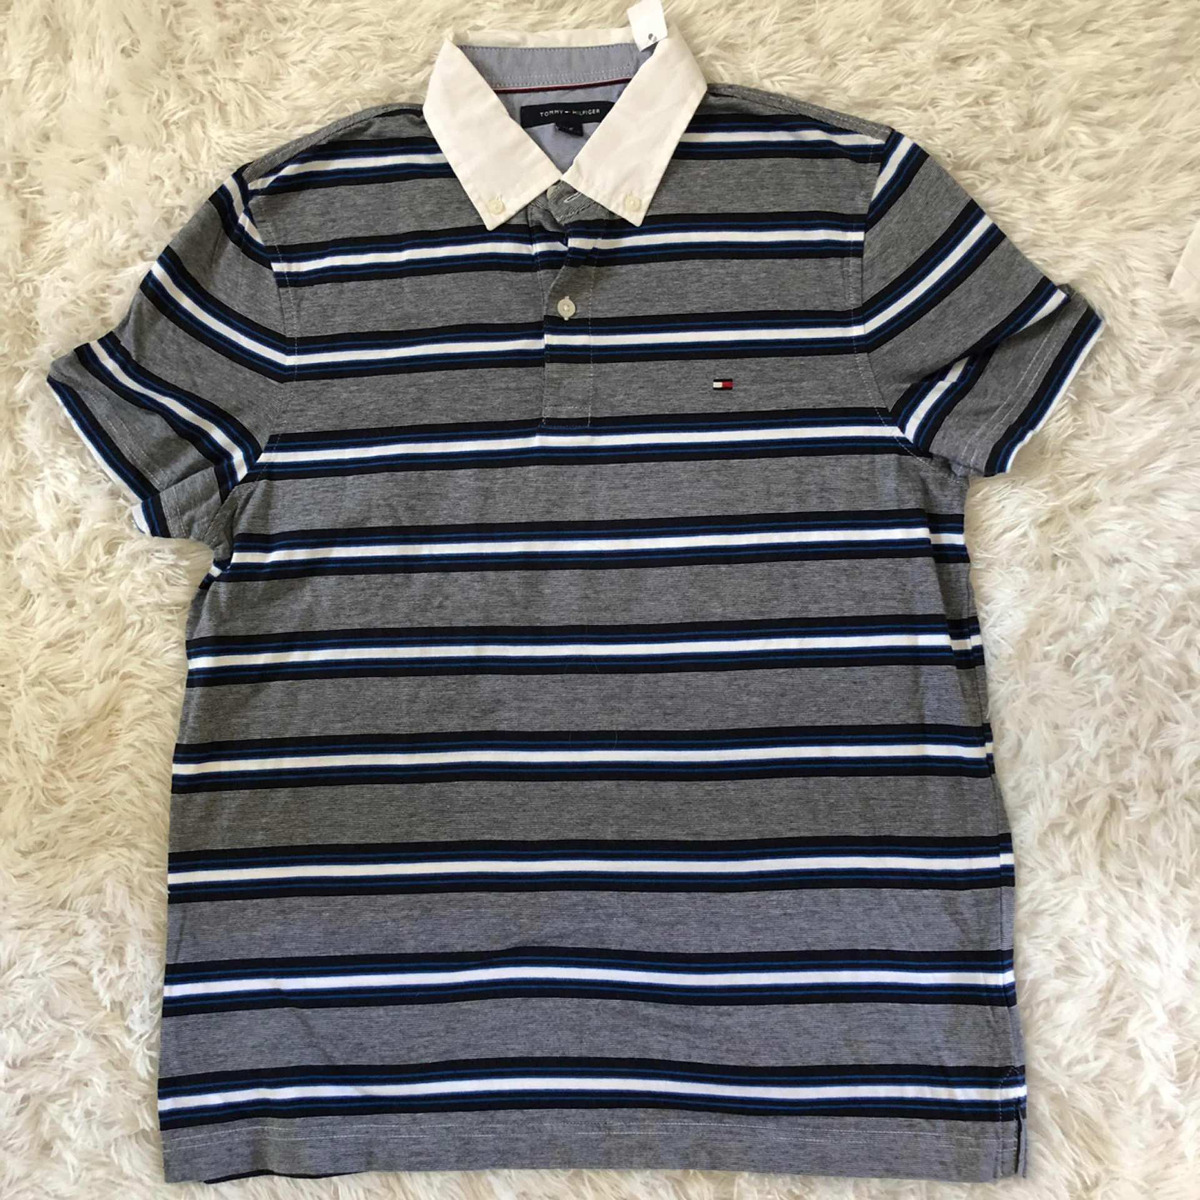 acded1b22 Camisa Polo -tommy Hilfiger - P - Listras - R  129